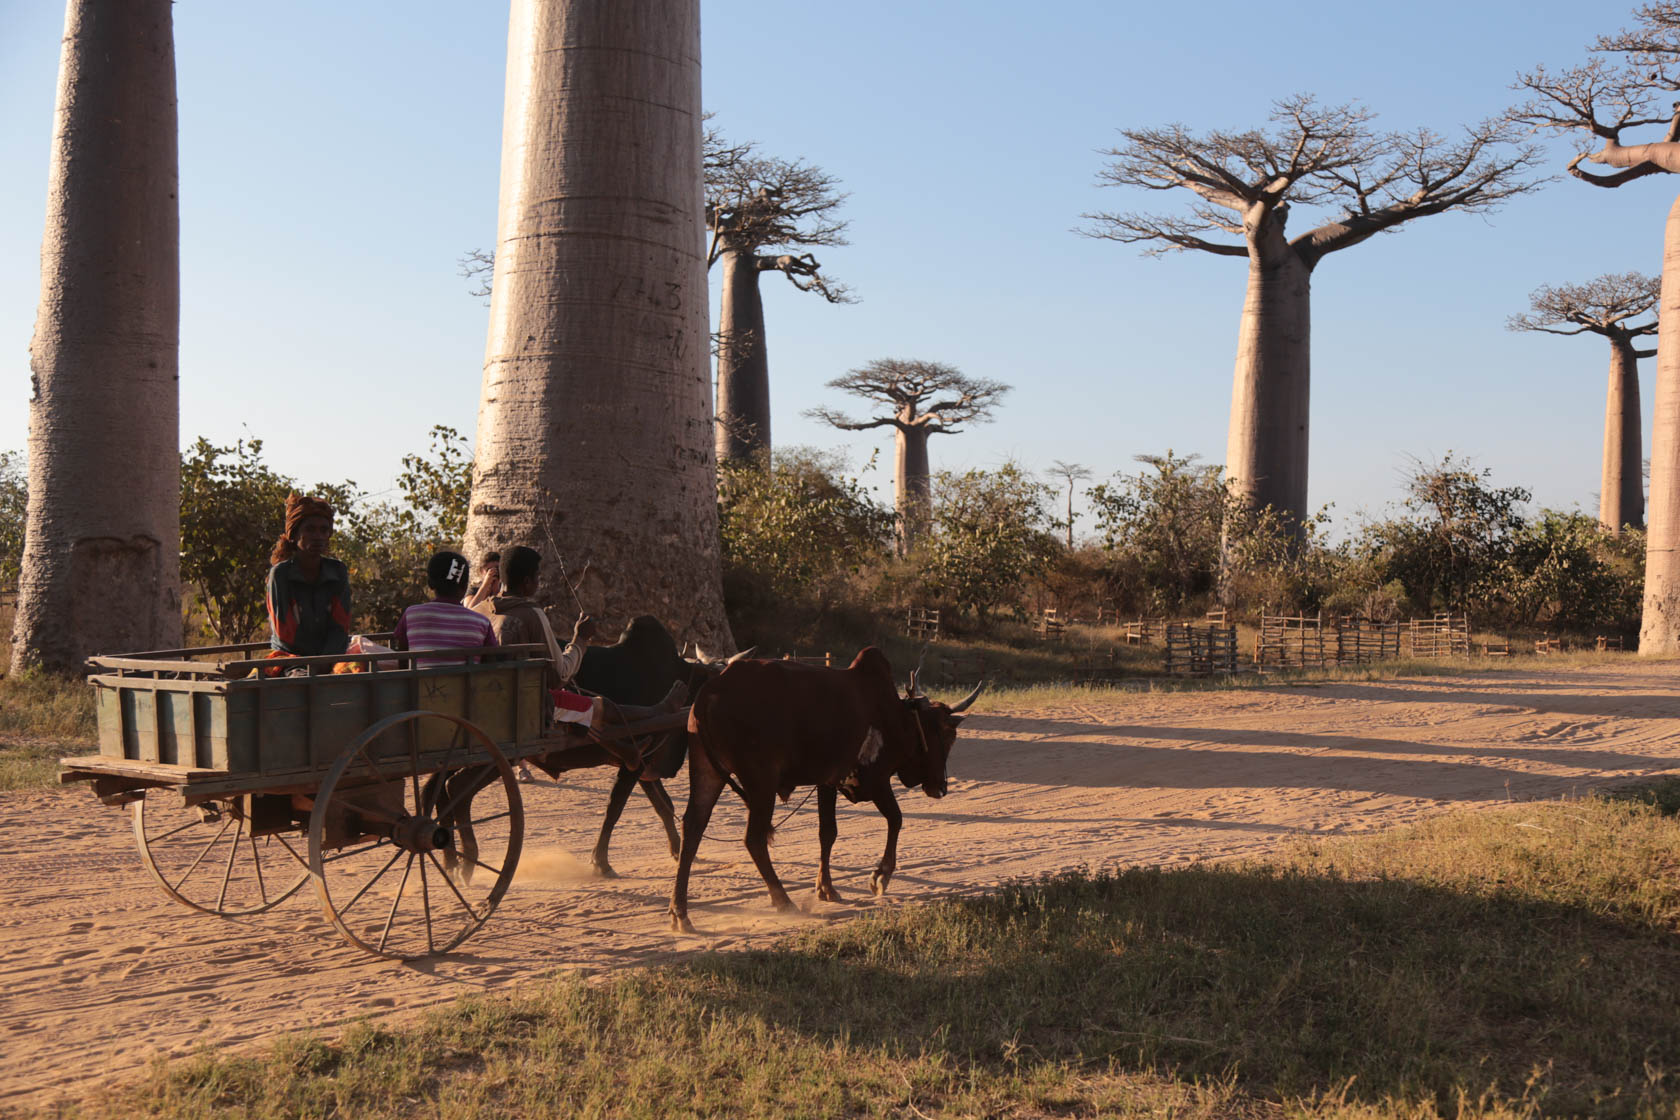 Women and horse drawn cart in Madagasgar taken with Canon EOS 6D DSLR camera